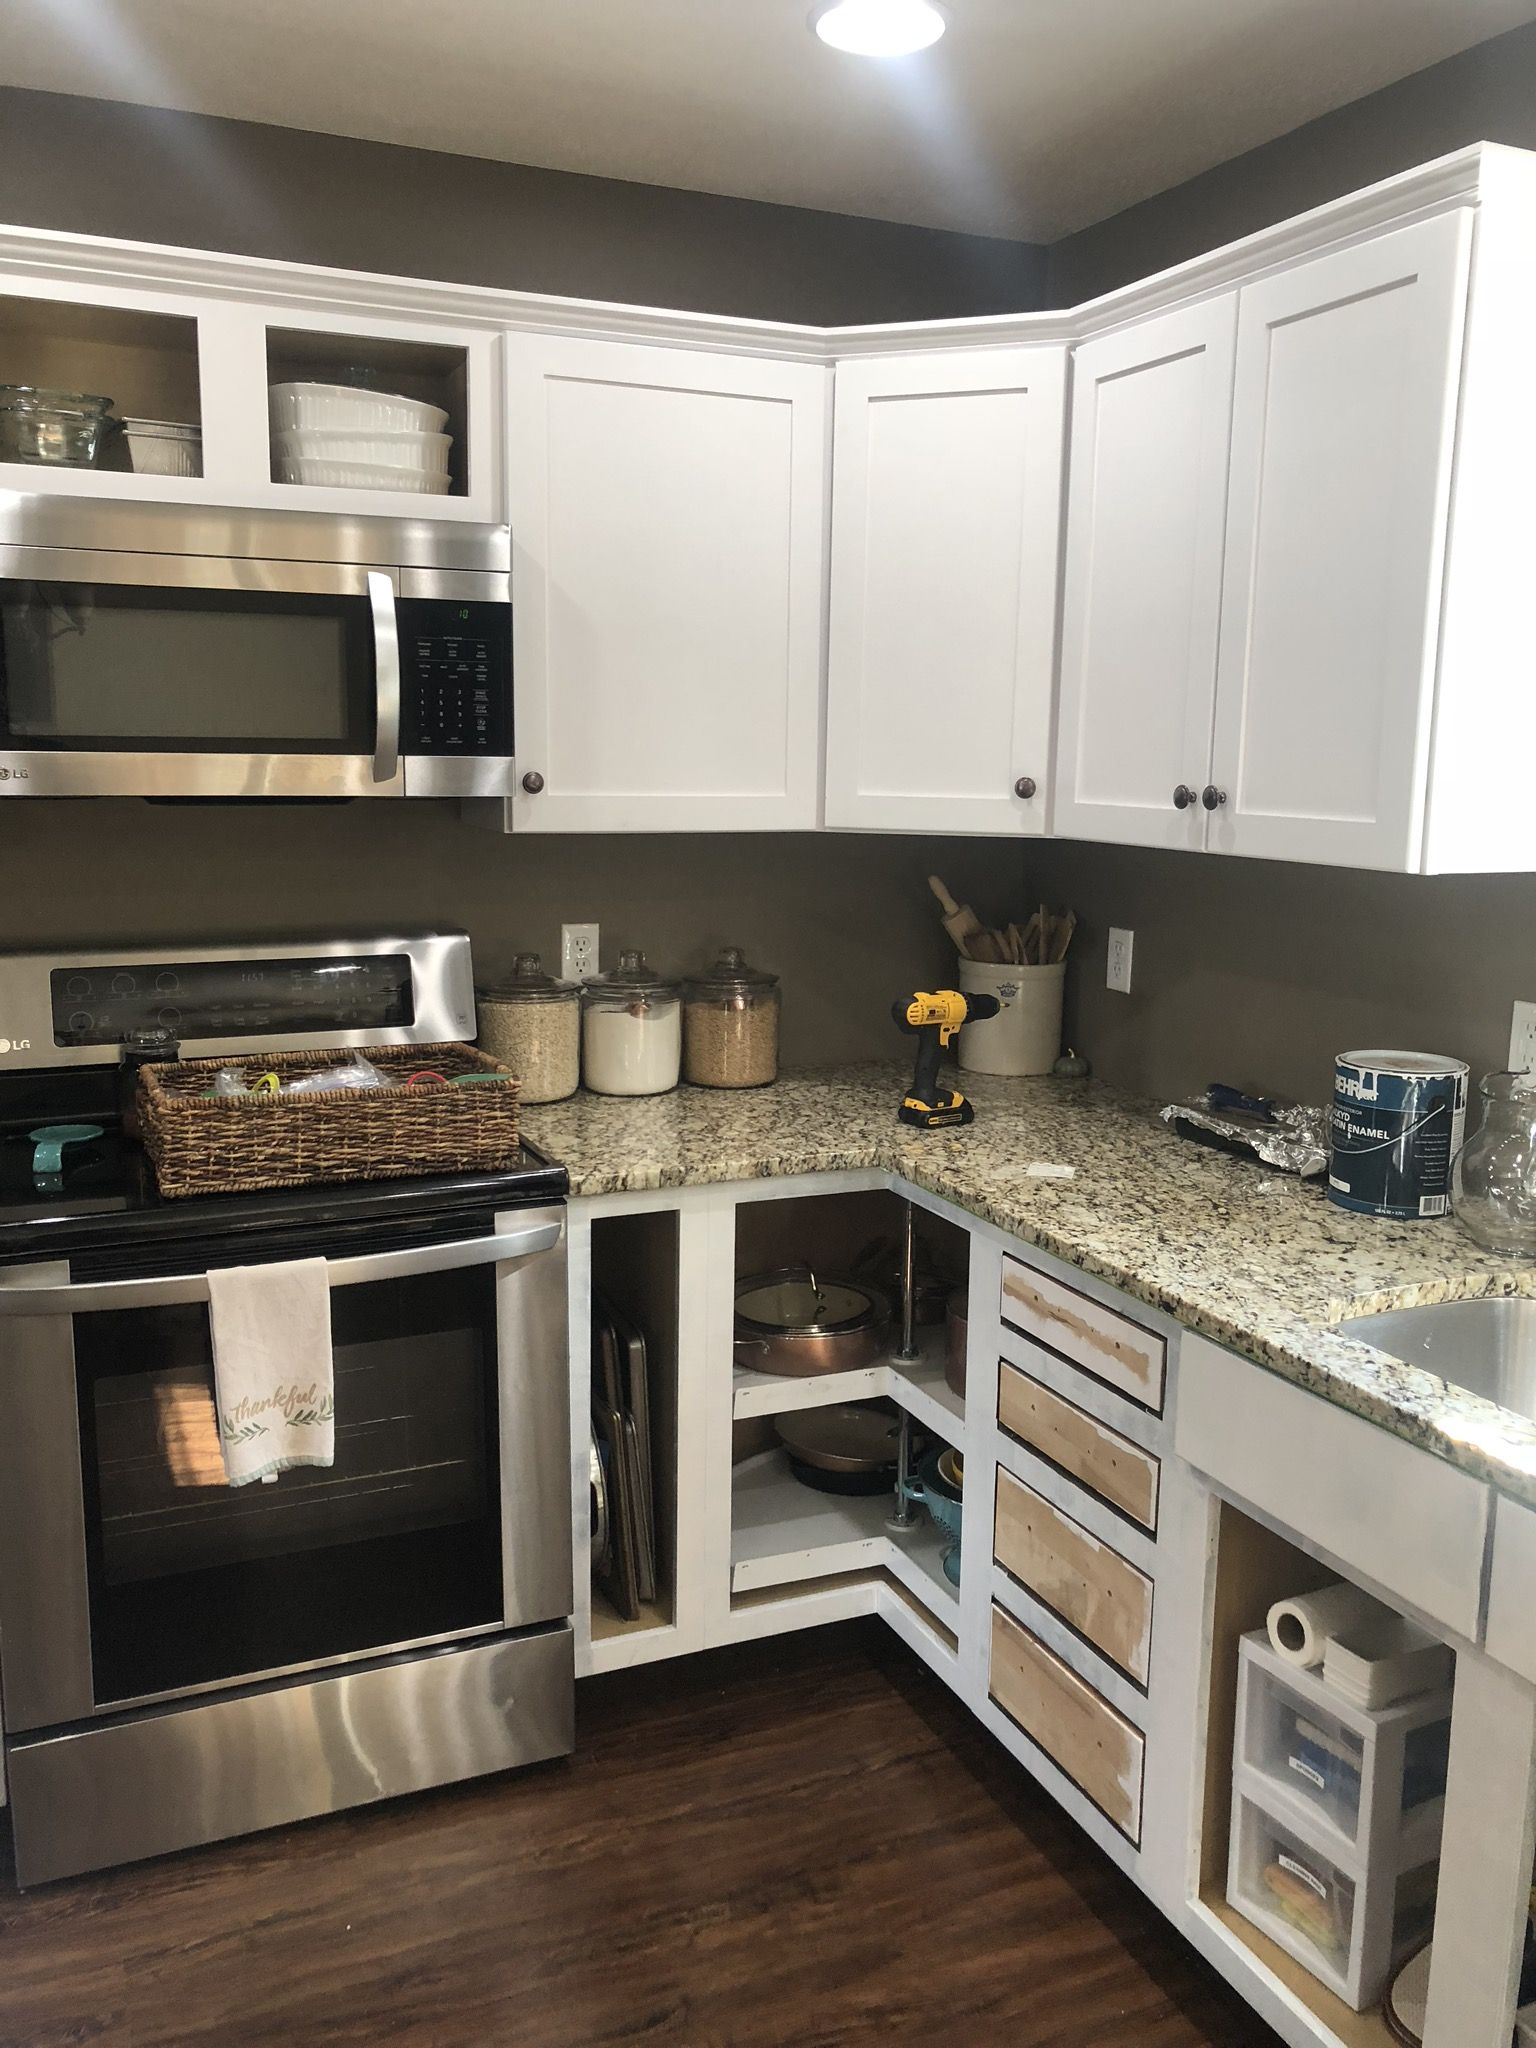 The Simple Way to Paint Kitchen Cabinets - The Simply ...